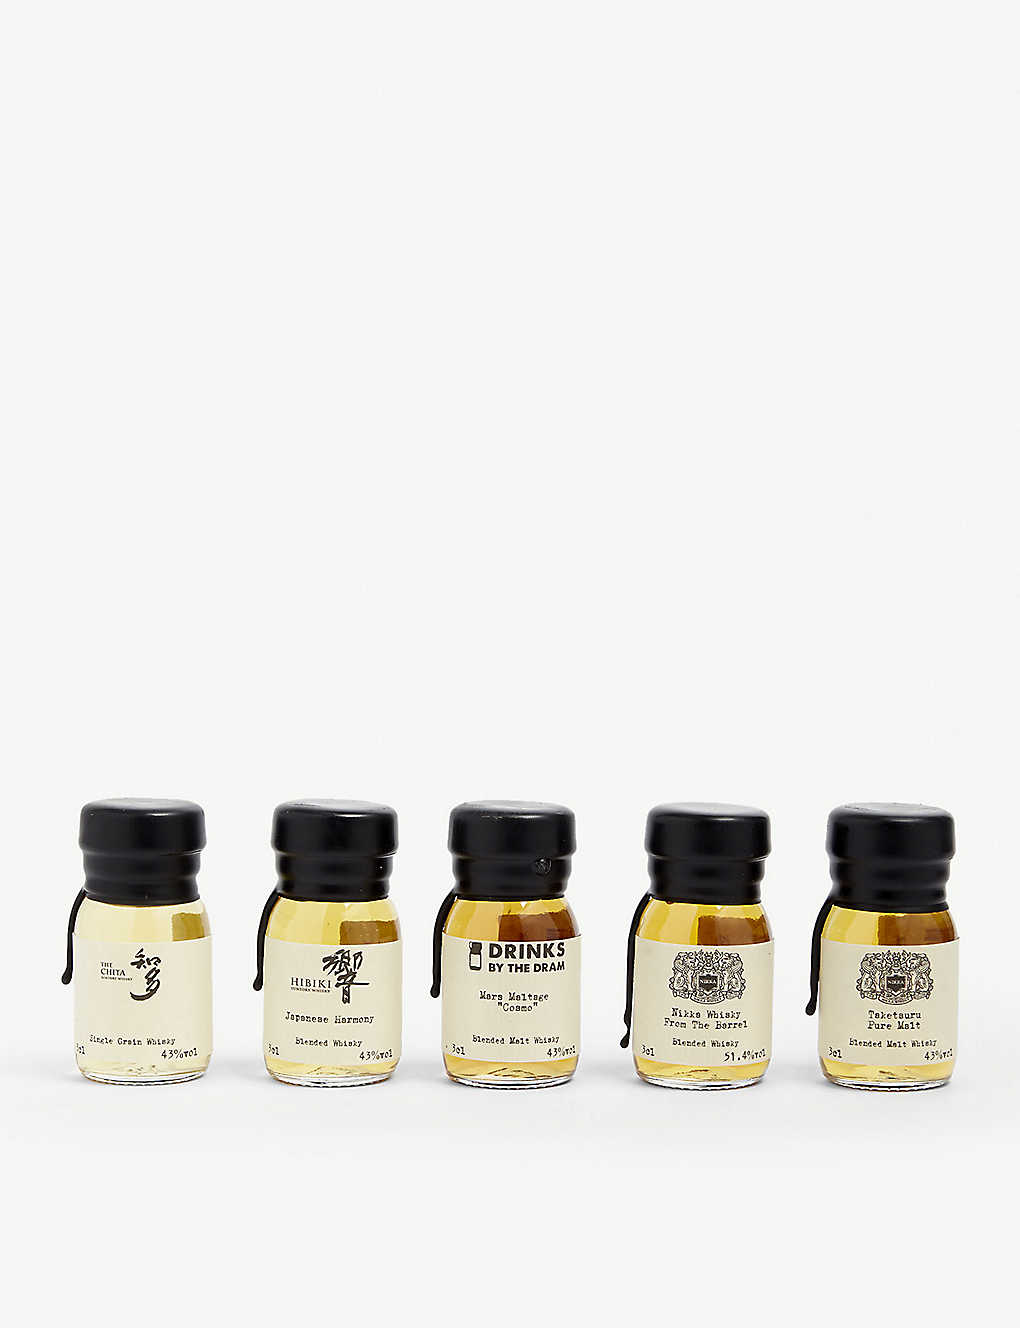 WORLD WHISKEY: Japanese whiskey tasting set